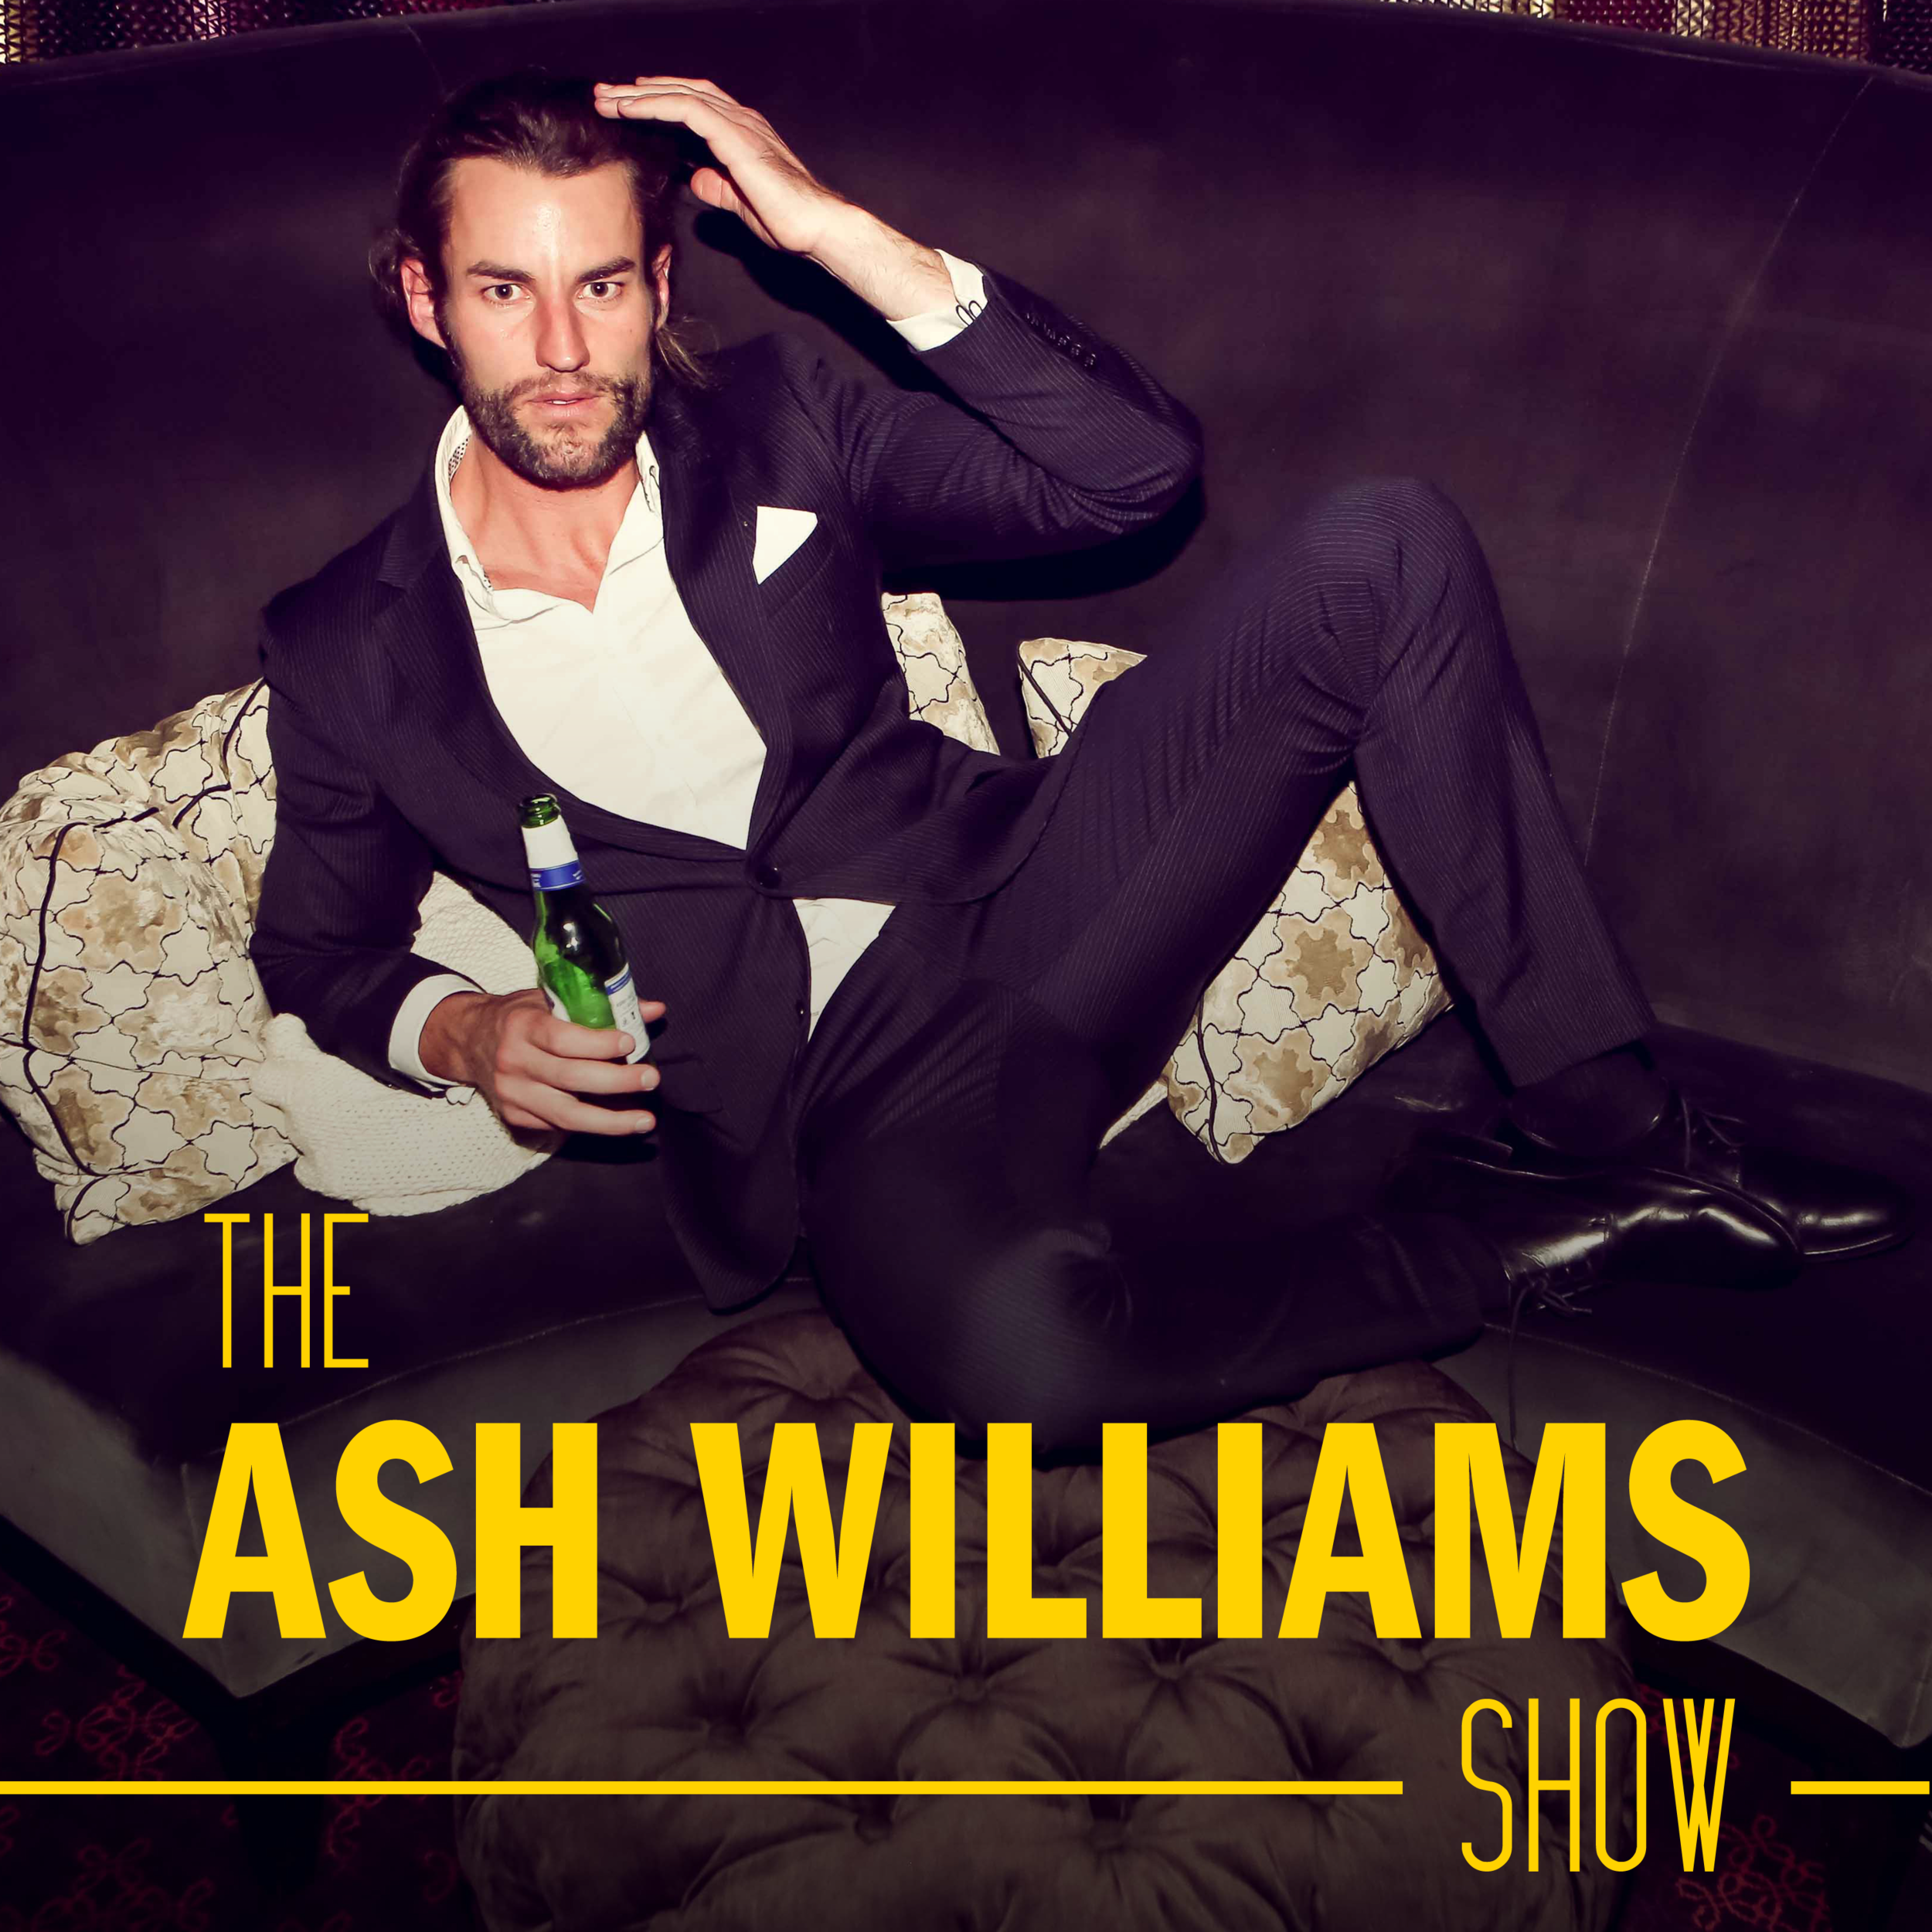 Ash Williams Show enters Season 3! Listen  free here.  To support the patreon and receive extra content  click here